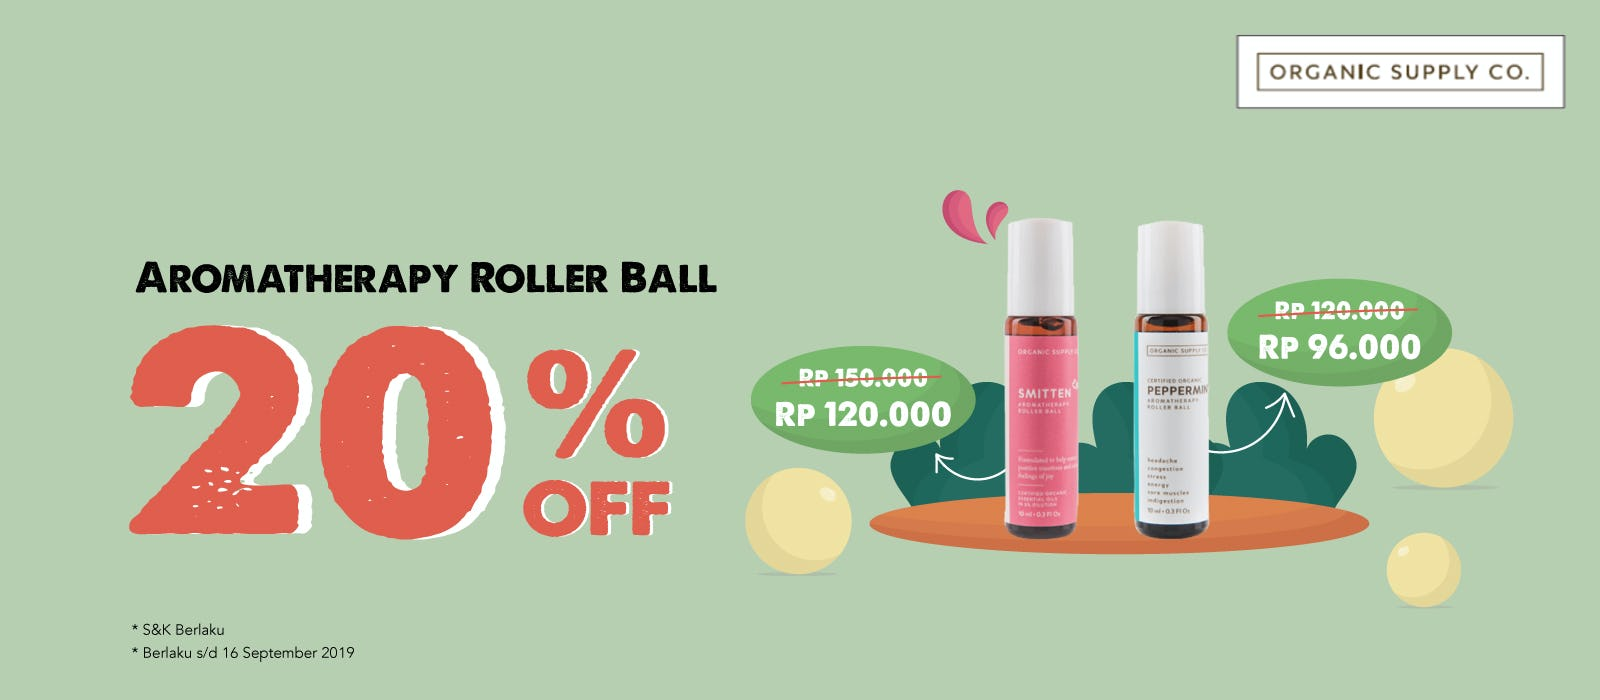 Organic Supply Aromatherapy Roller Ball 20% OFF